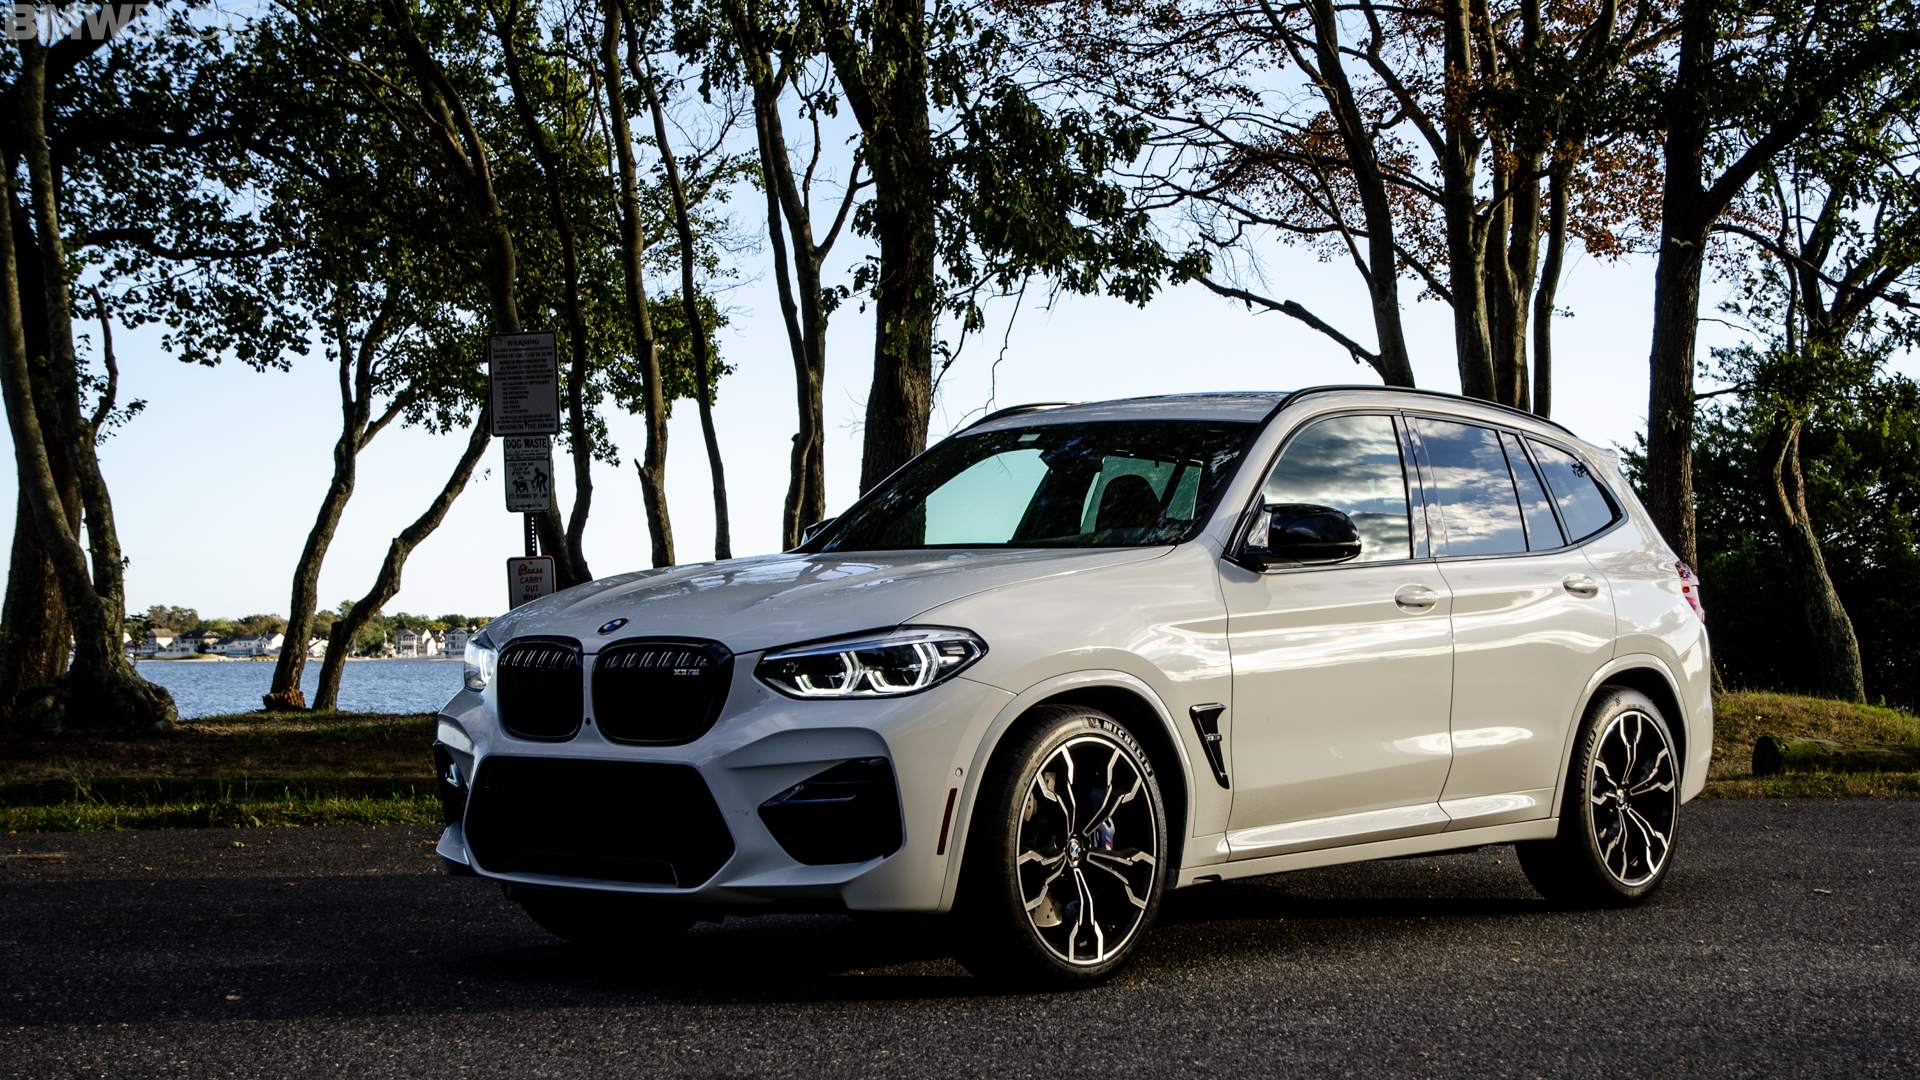 BMW X3 M Competition 1 of 35